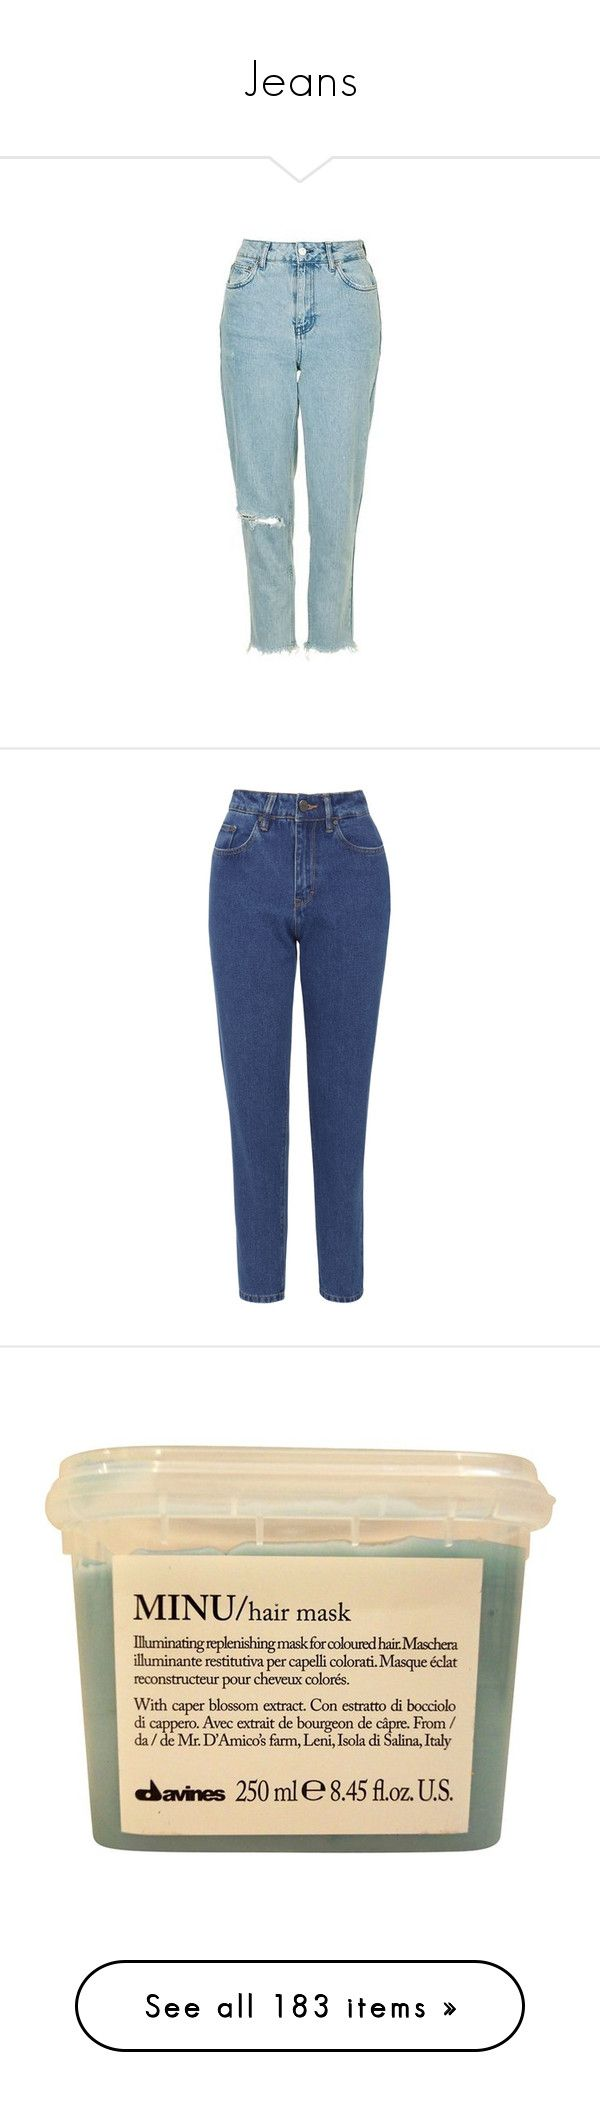 """""""Jeans"""" by tacoxcat ❤ liked on Polyvore featuring jeans, indigo, high rise jeans, cuffed blue jeans, cuffed jeans, bleached jeans, indigo jeans, tapered fit jeans, tapered jeans and relaxed fit jeans"""